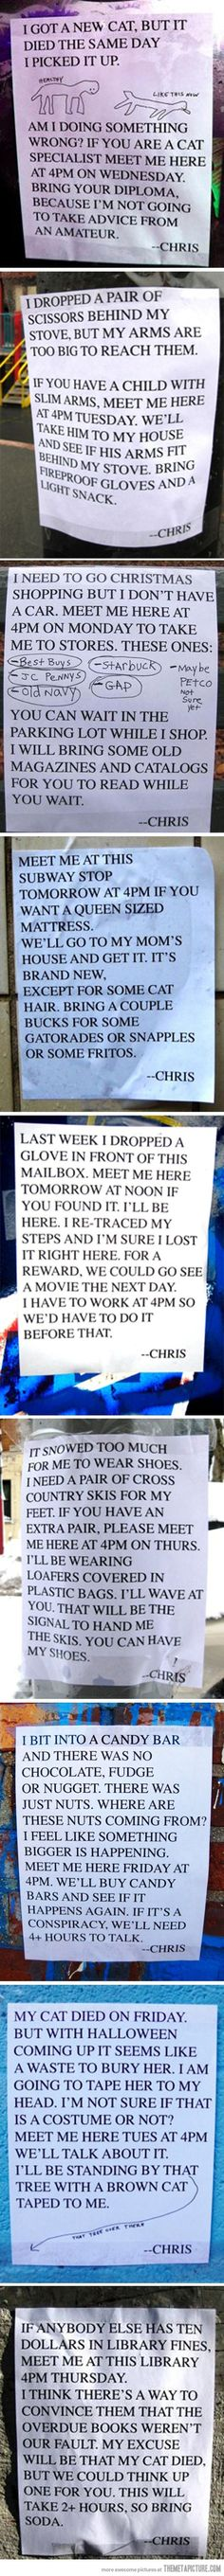 I'm pretty sure I'd like to meet Chris…I'm clearing my schedule at 4 o'clock